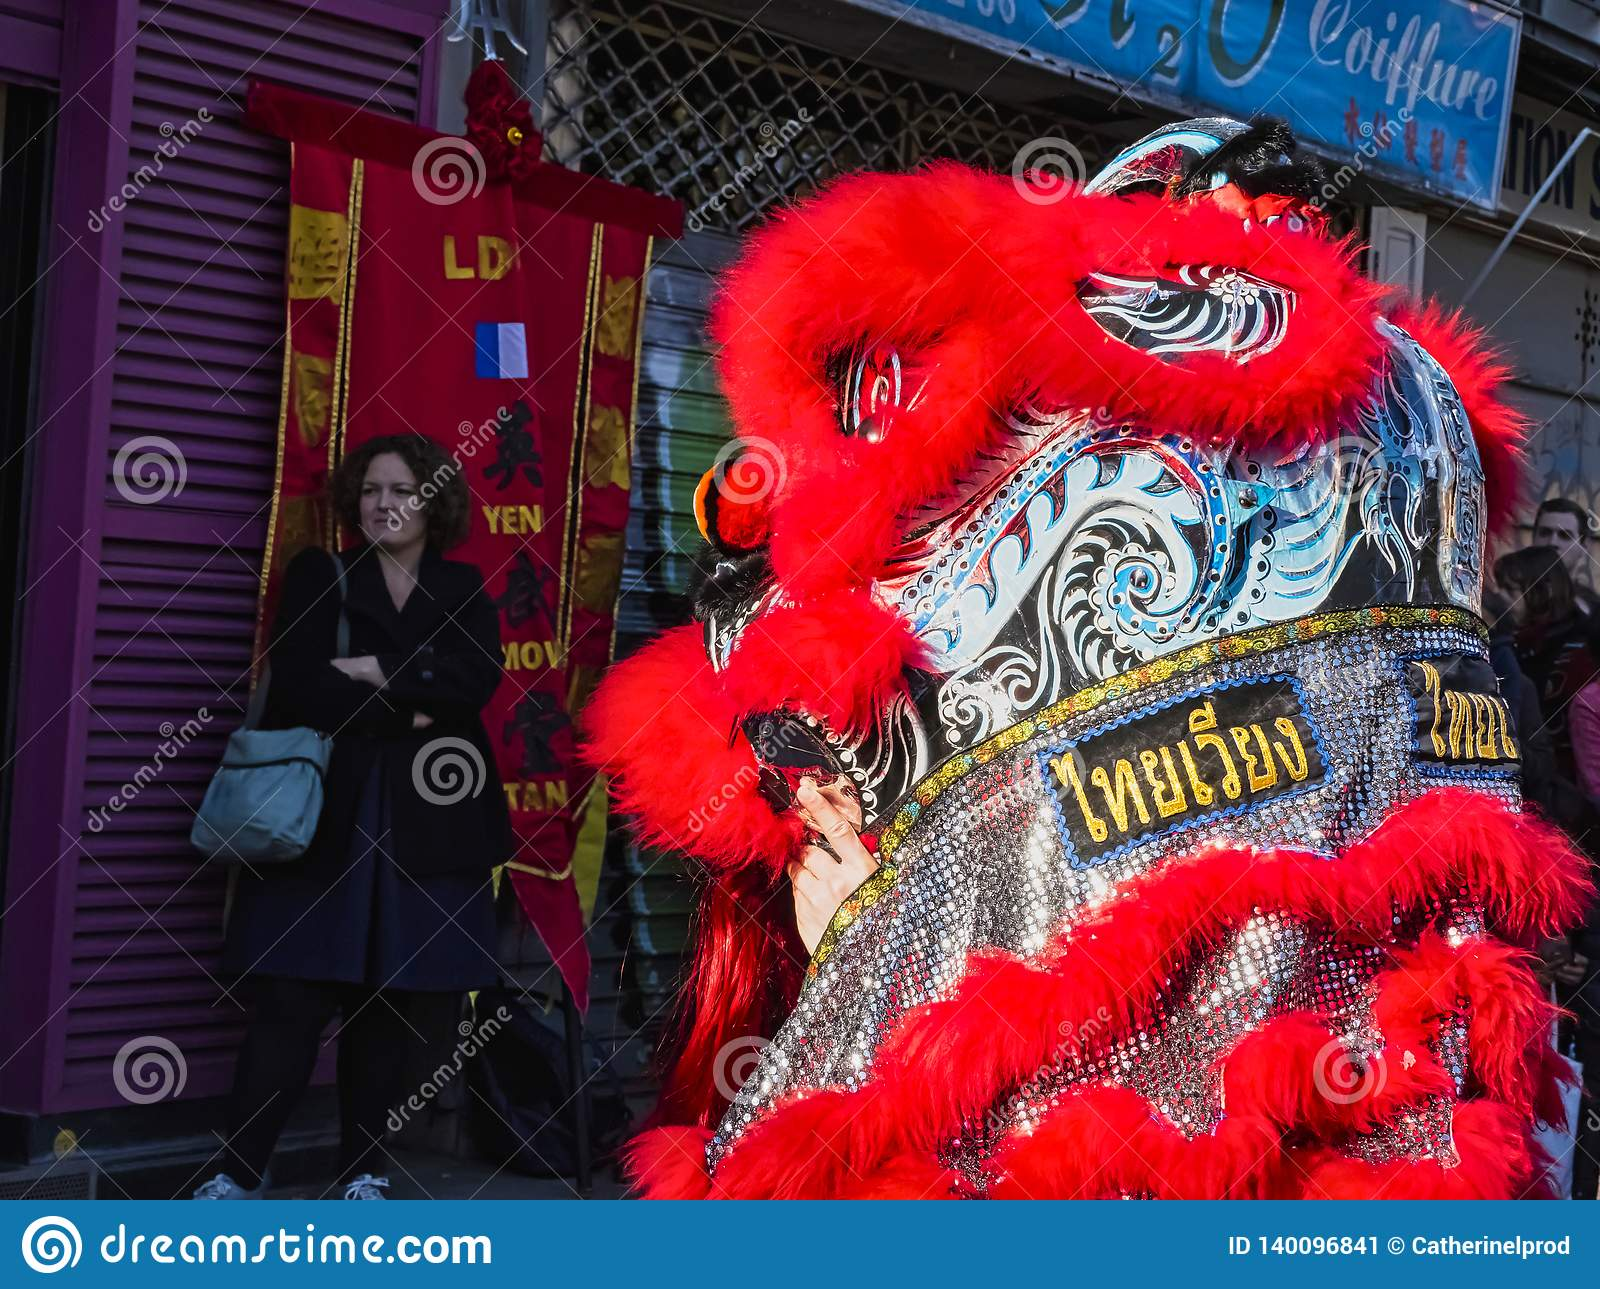 Chinese new year 2019 Paris France - Lion dancing